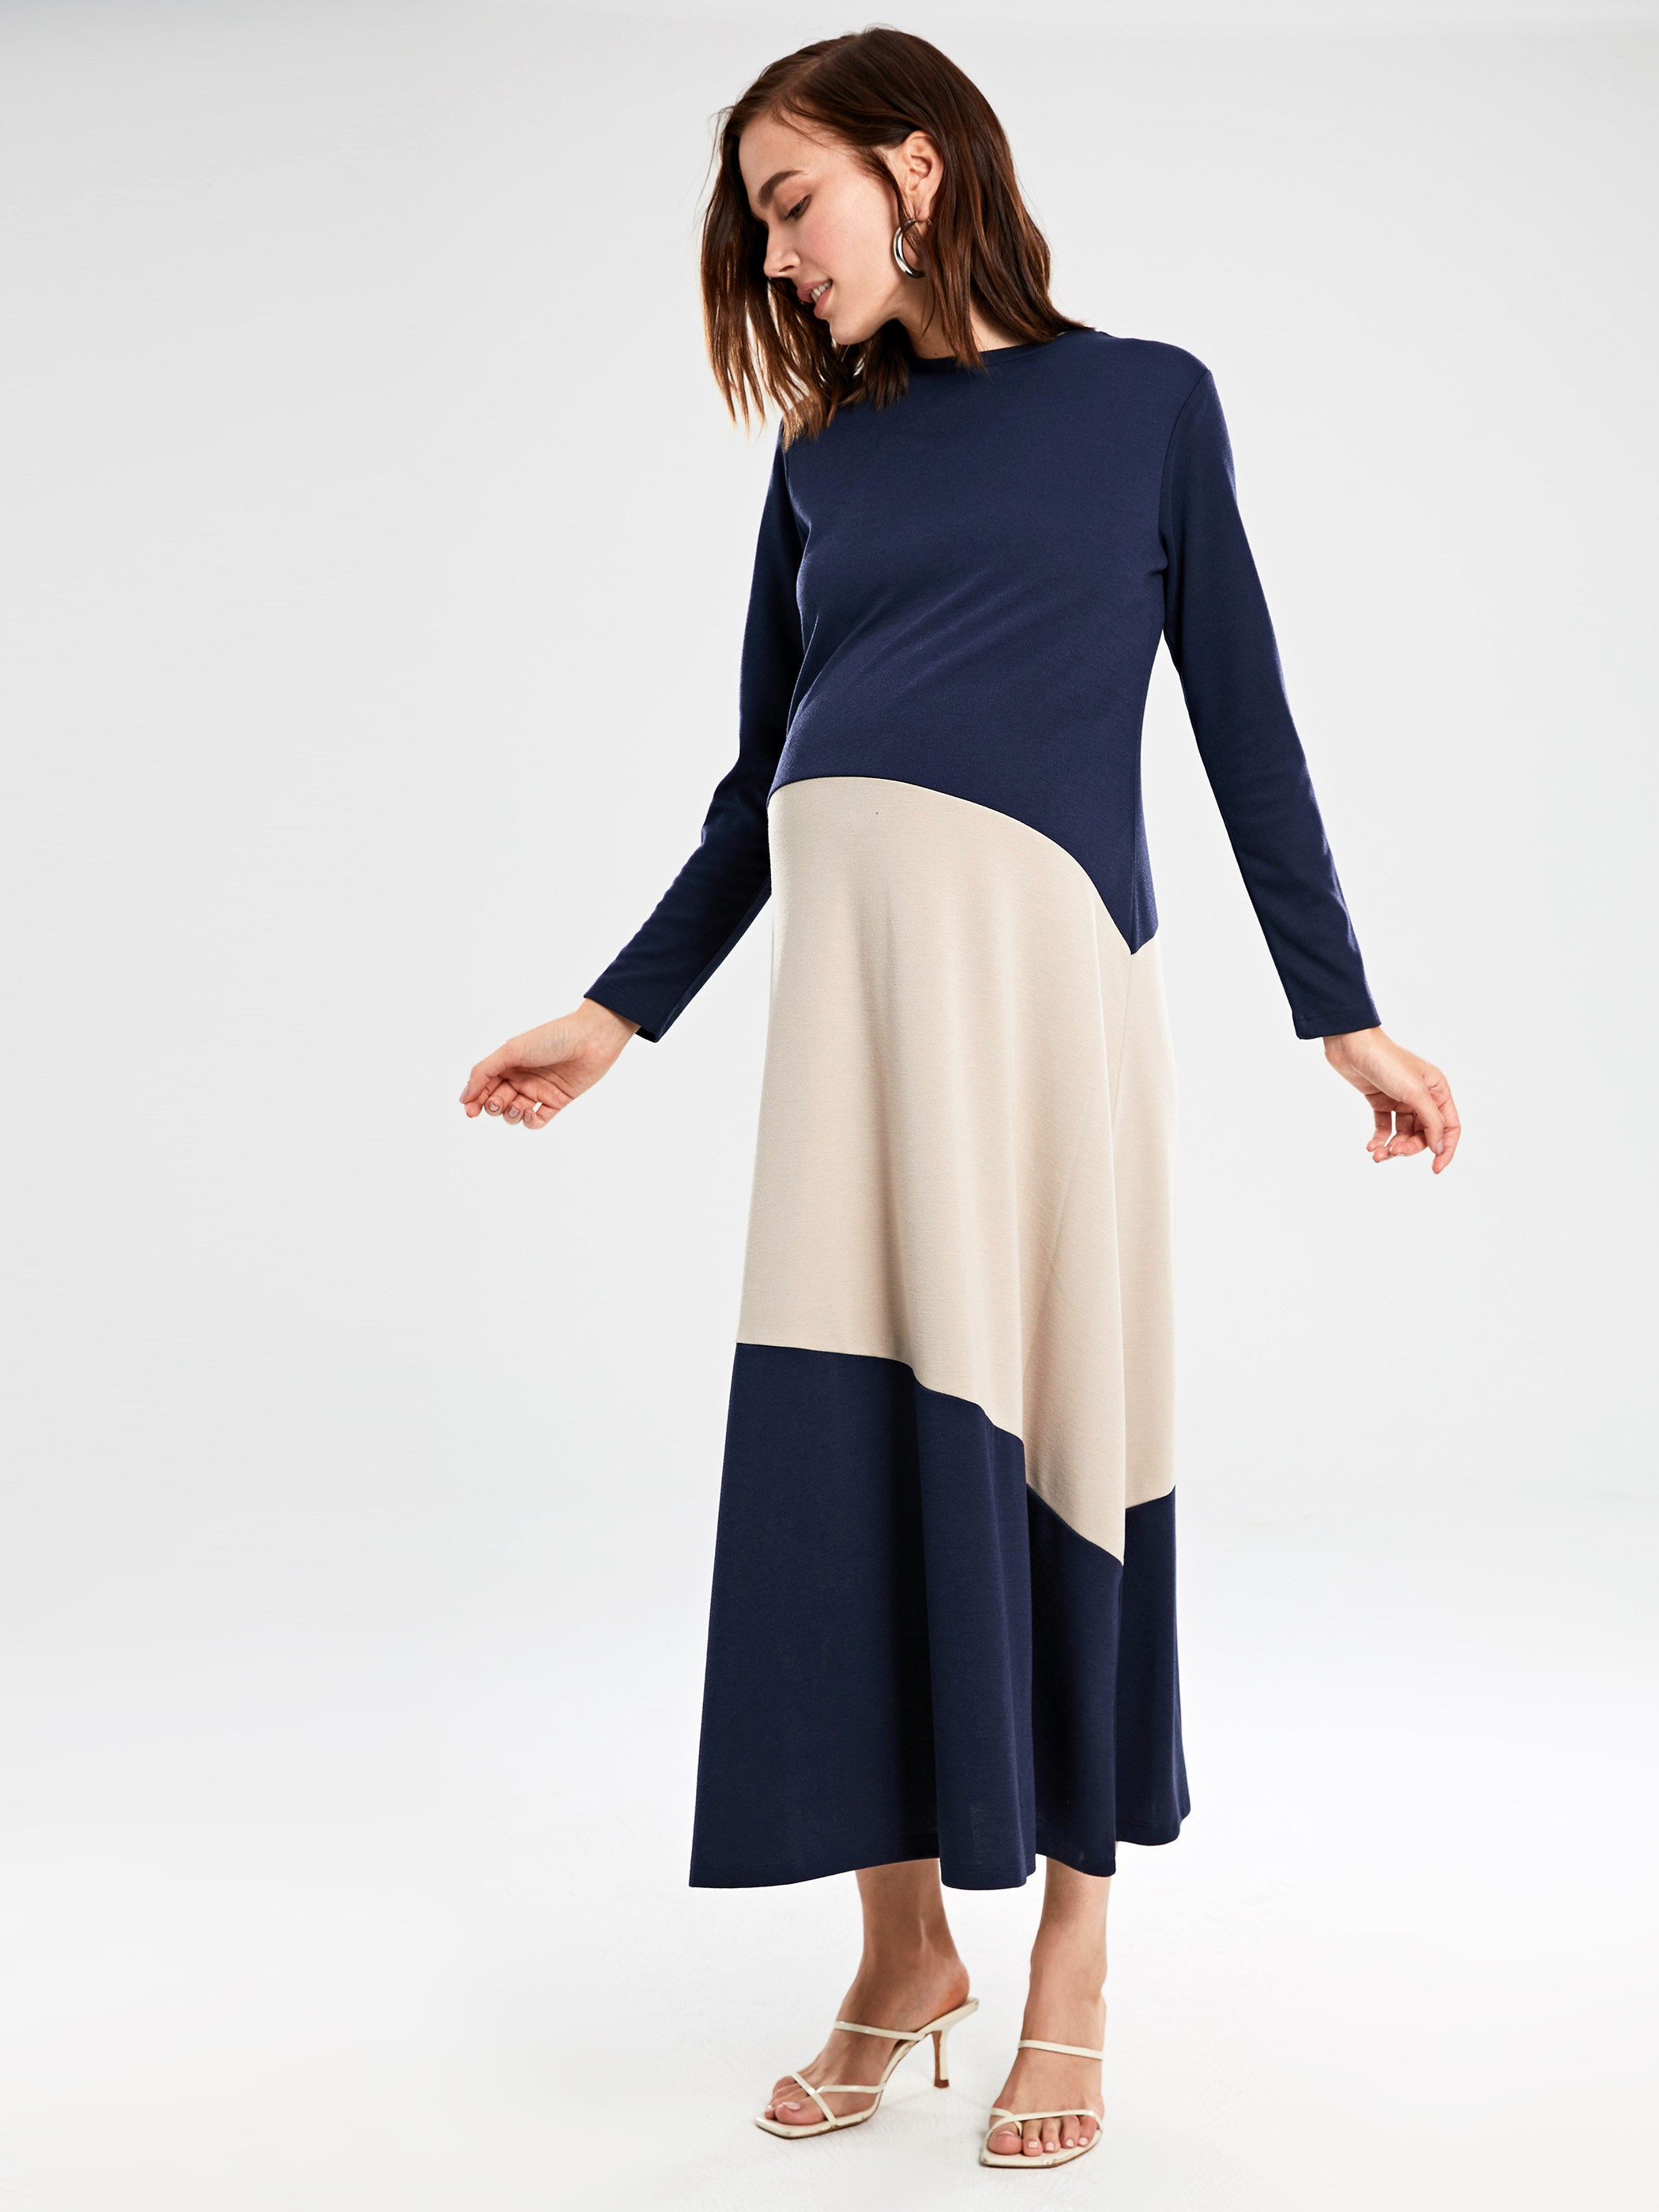 NAVY - Colour-Block Maternity Dress - 9WT693Z8